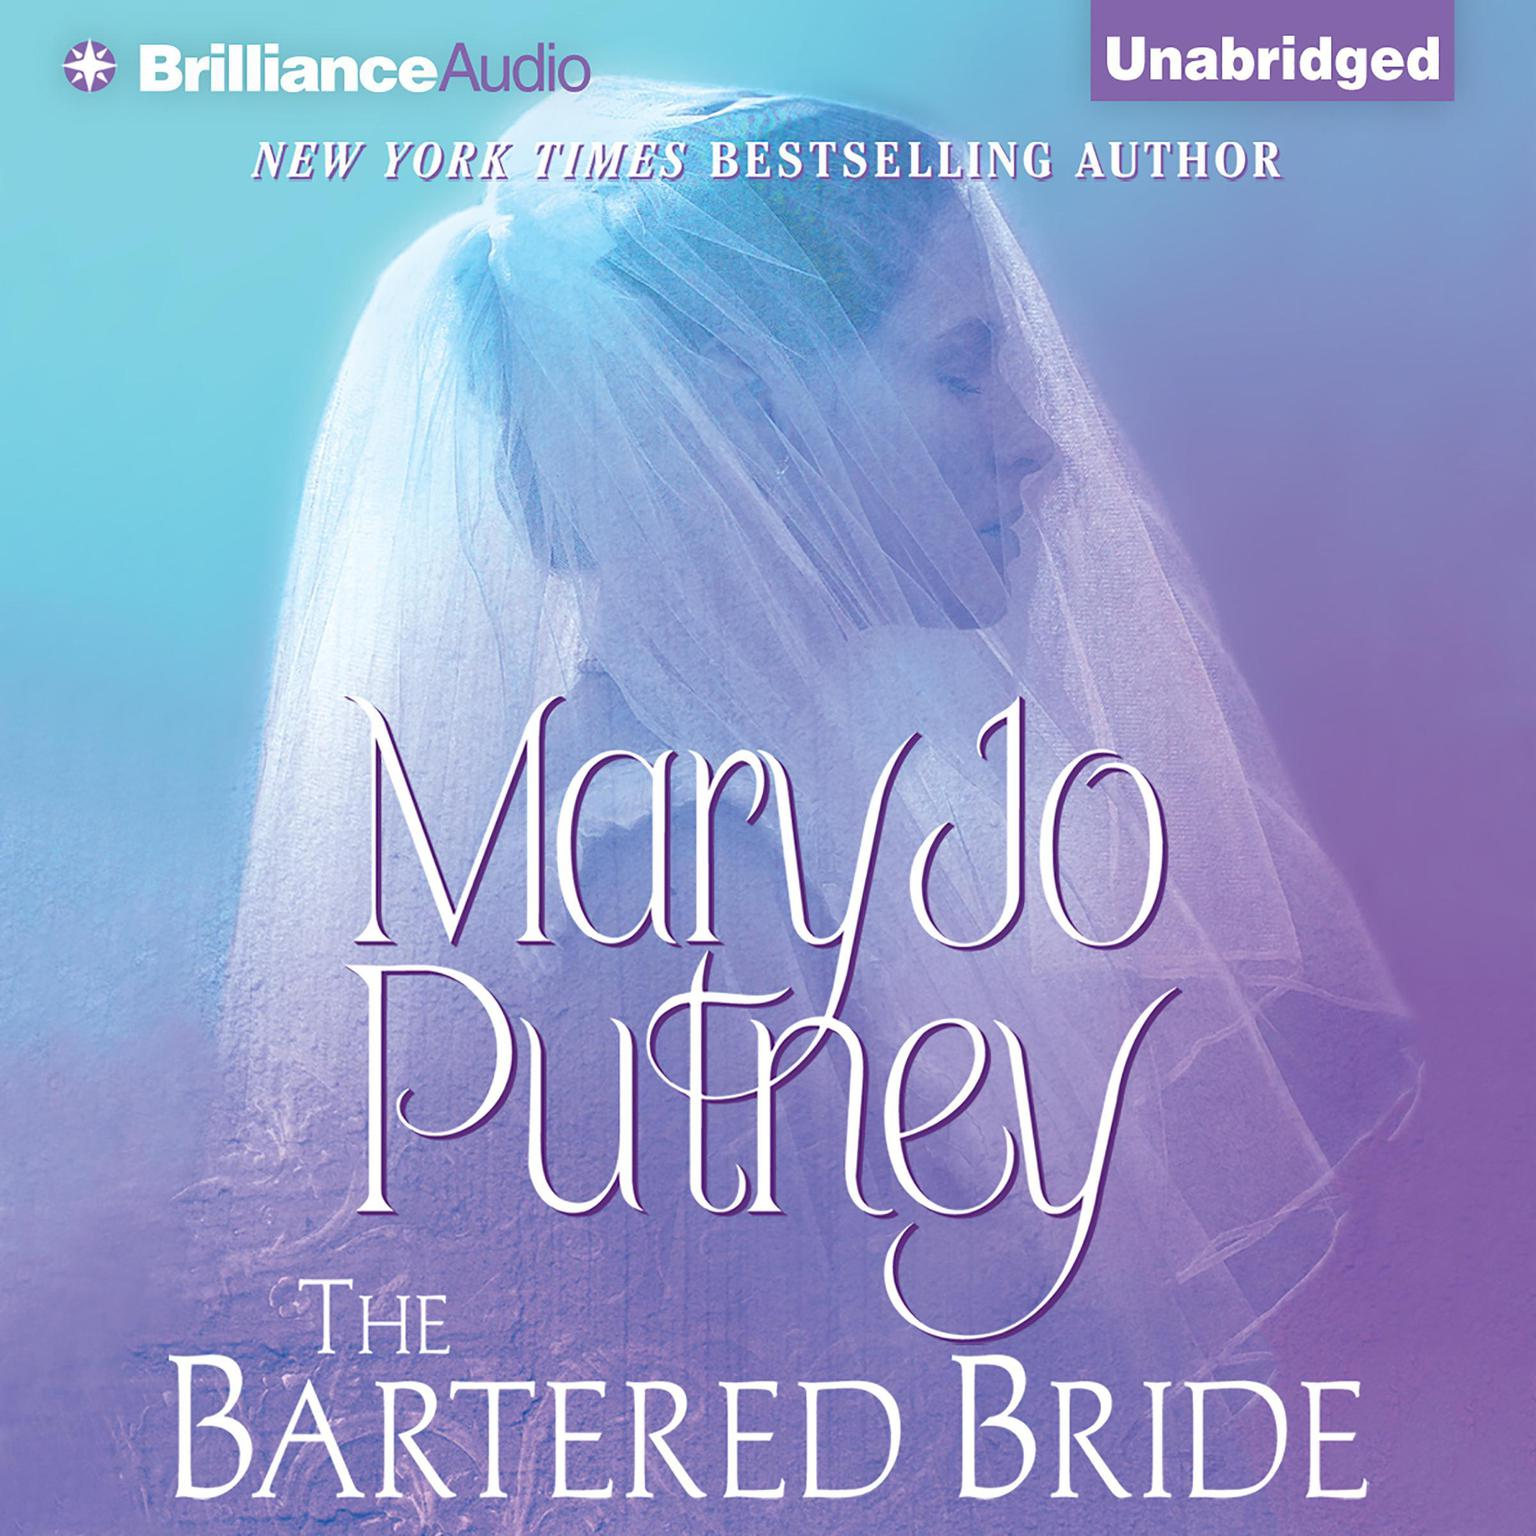 Printable The Bartered Bride Audiobook Cover Art